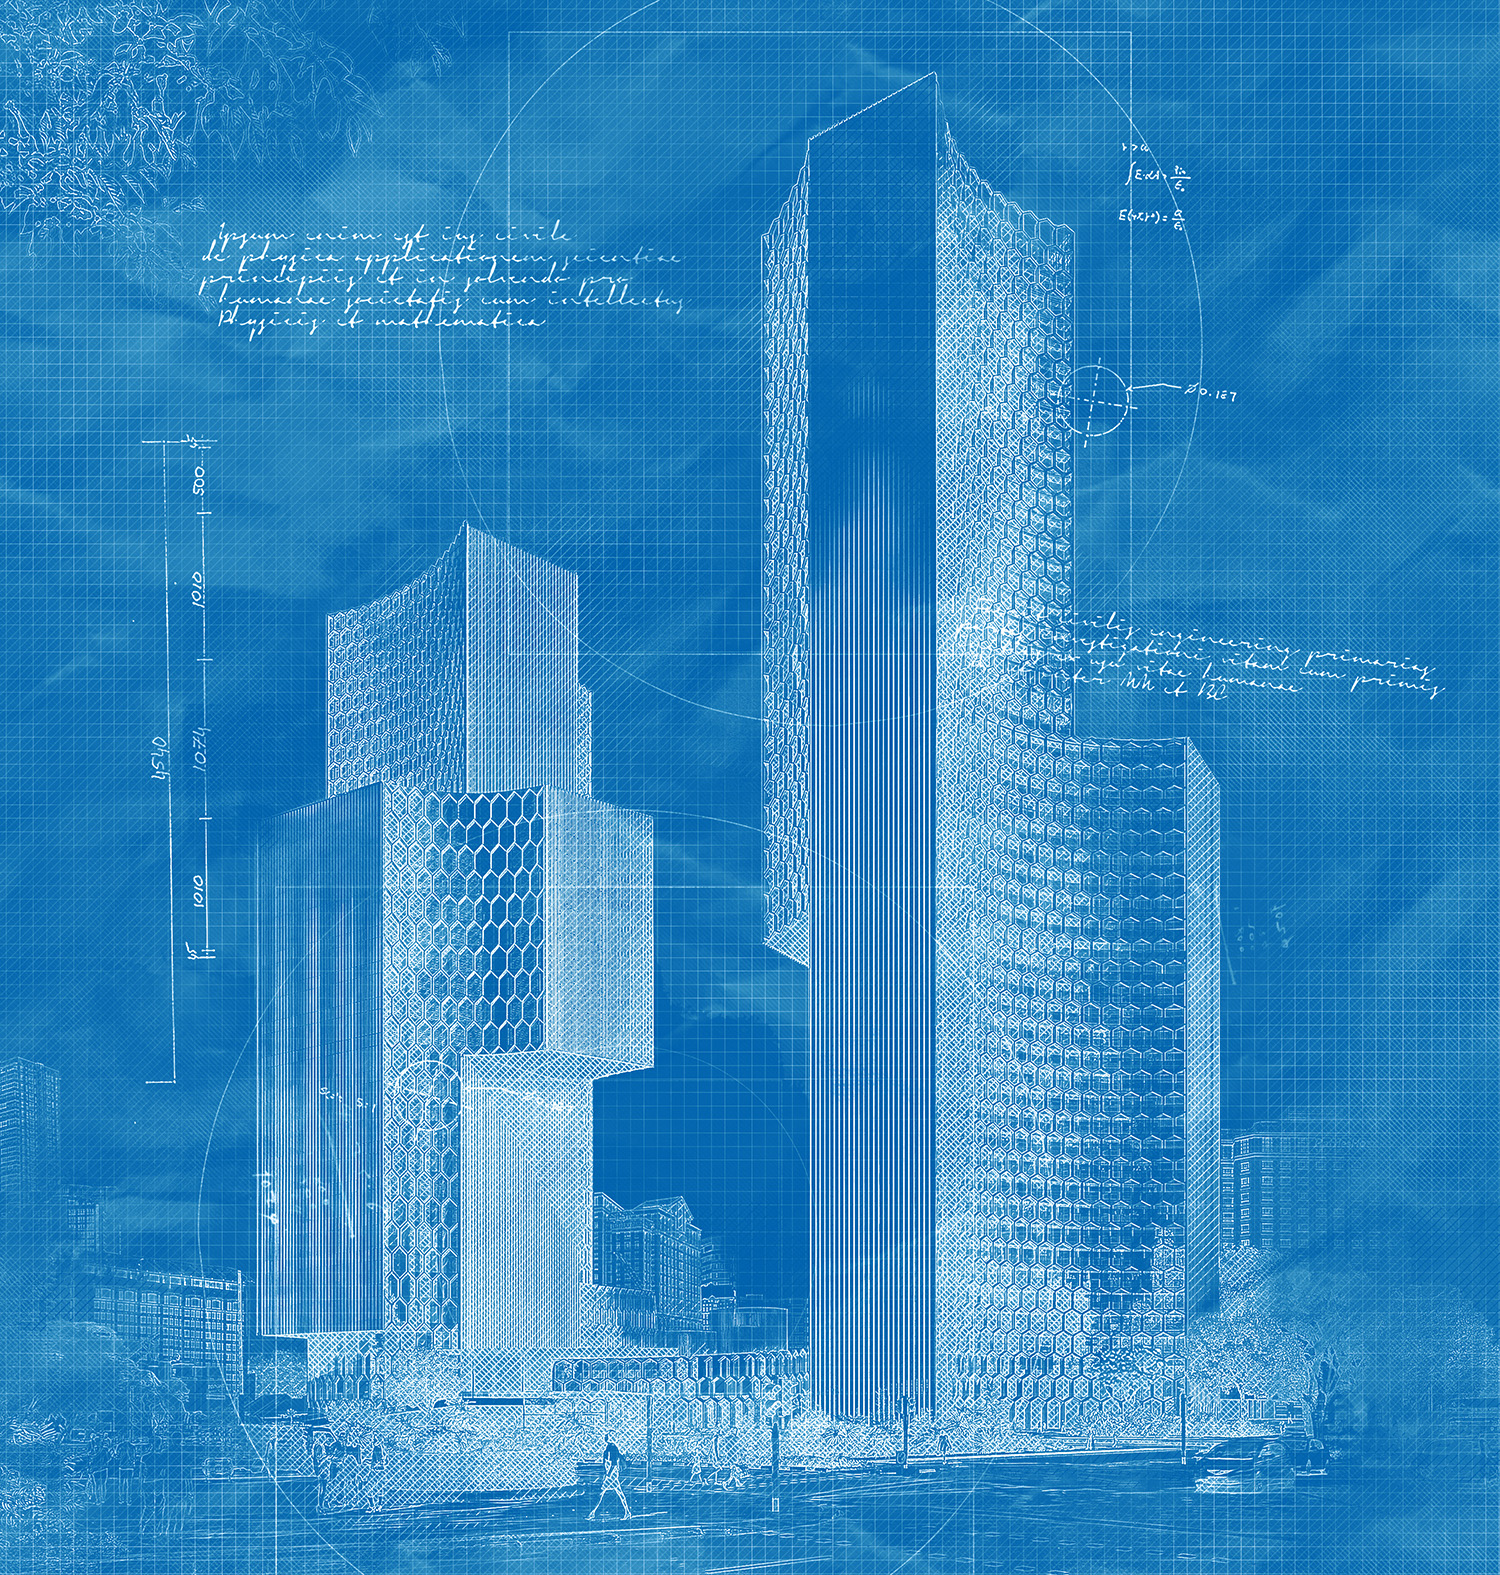 Architecture sketch and blueprint photoshop action graphit architecture sketch and blueprint photoshop action malvernweather Image collections